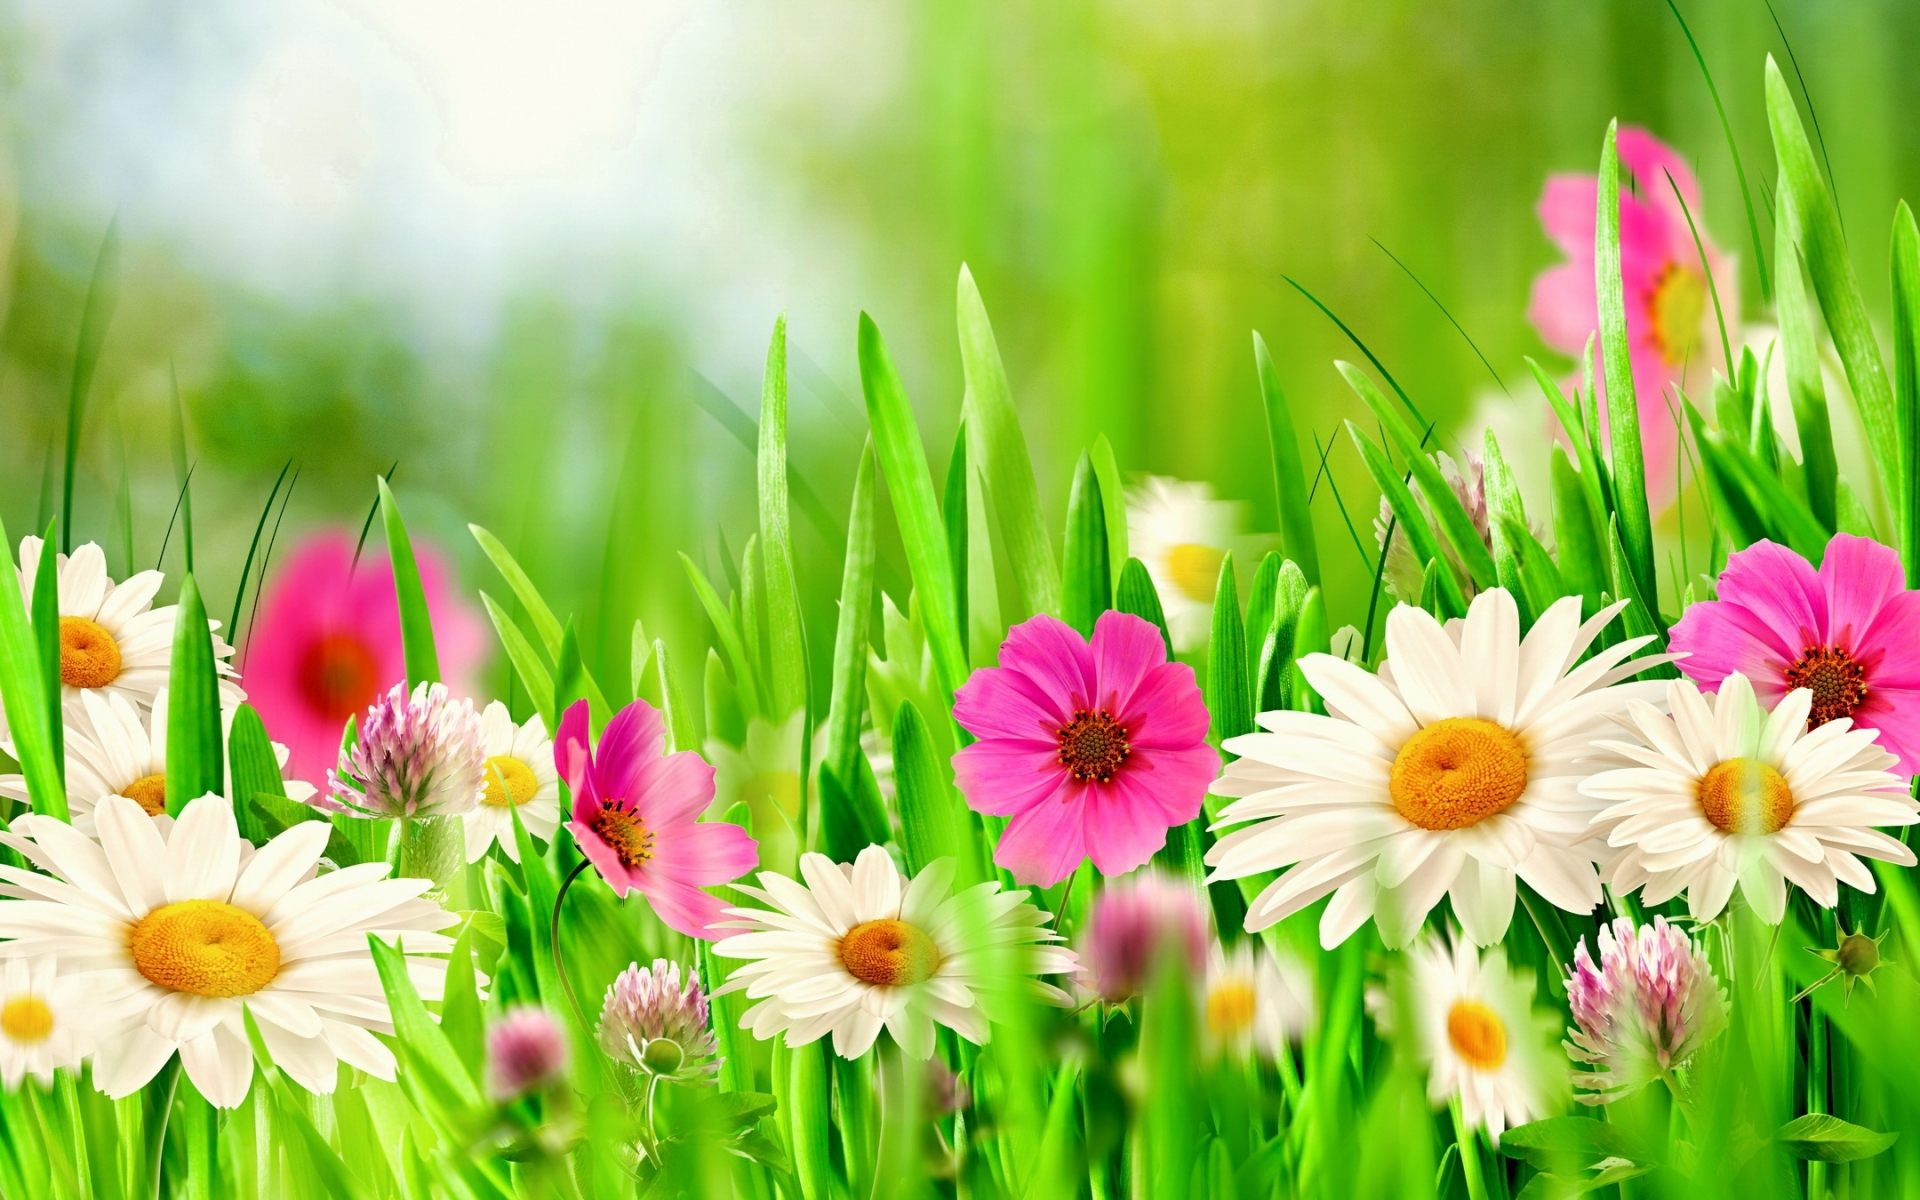 flowers wallpaper.